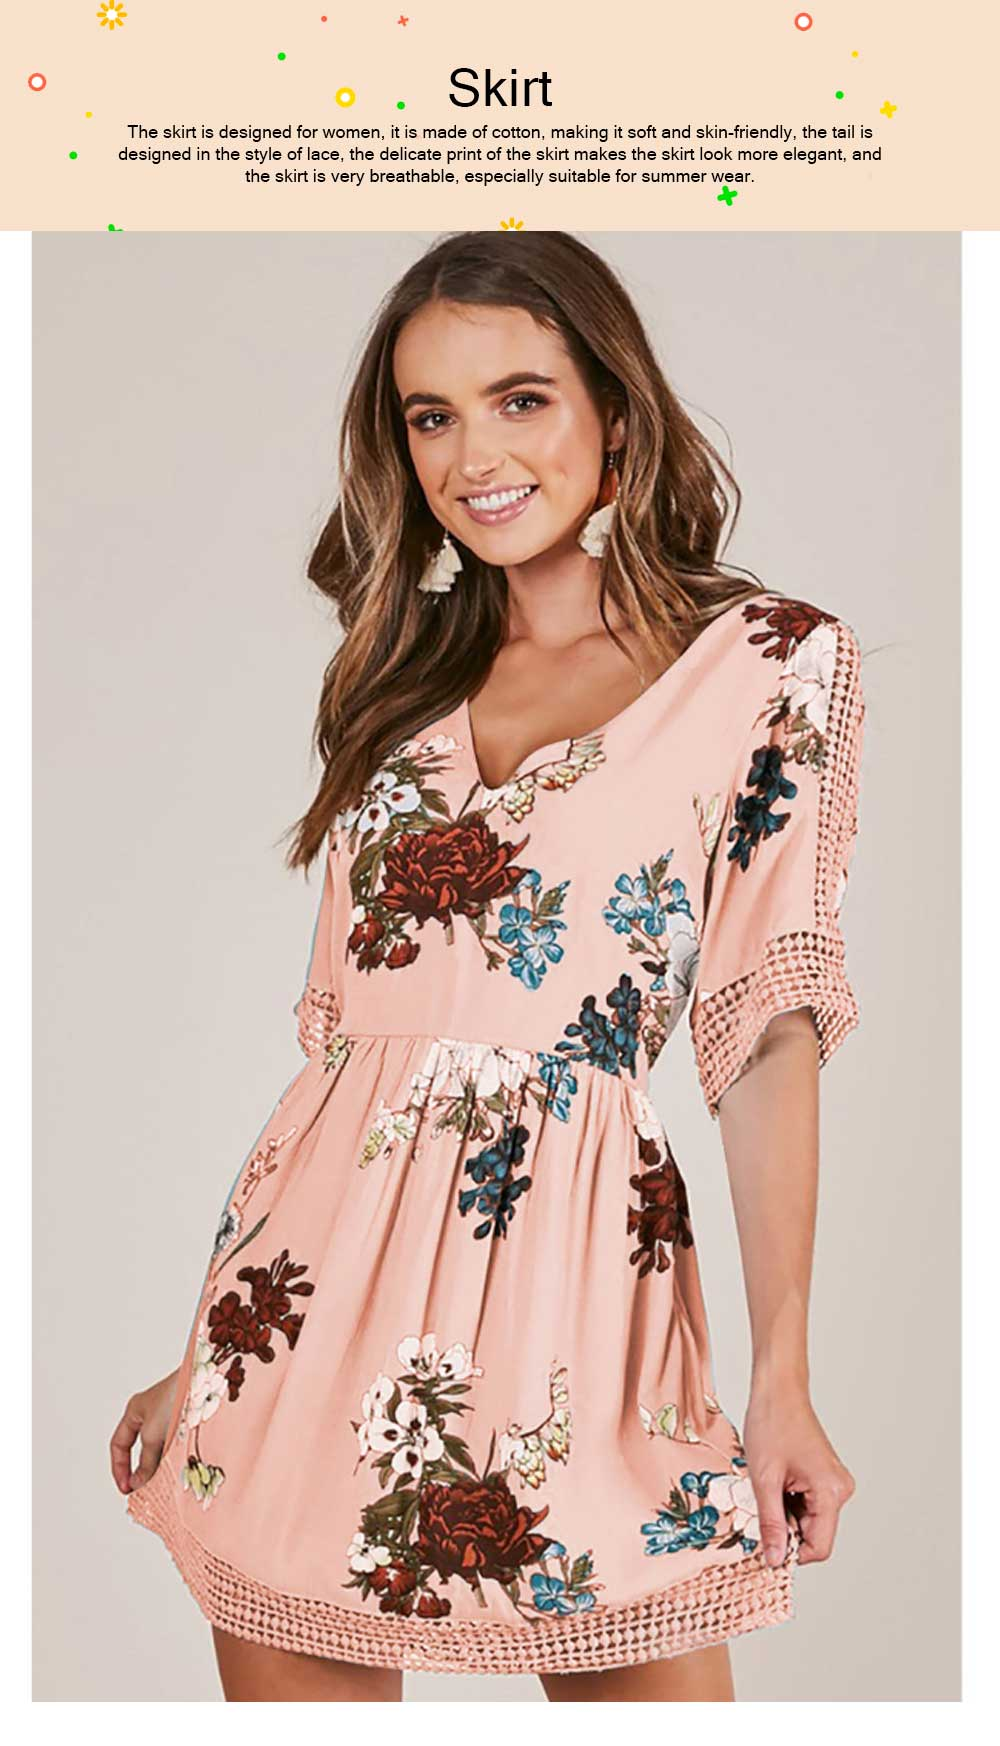 V Neck Women Dress, Breathable Short Dress with Lace Tail, Printing Pink Kilt, Women One-piece Dress Summer Pink 2019 0